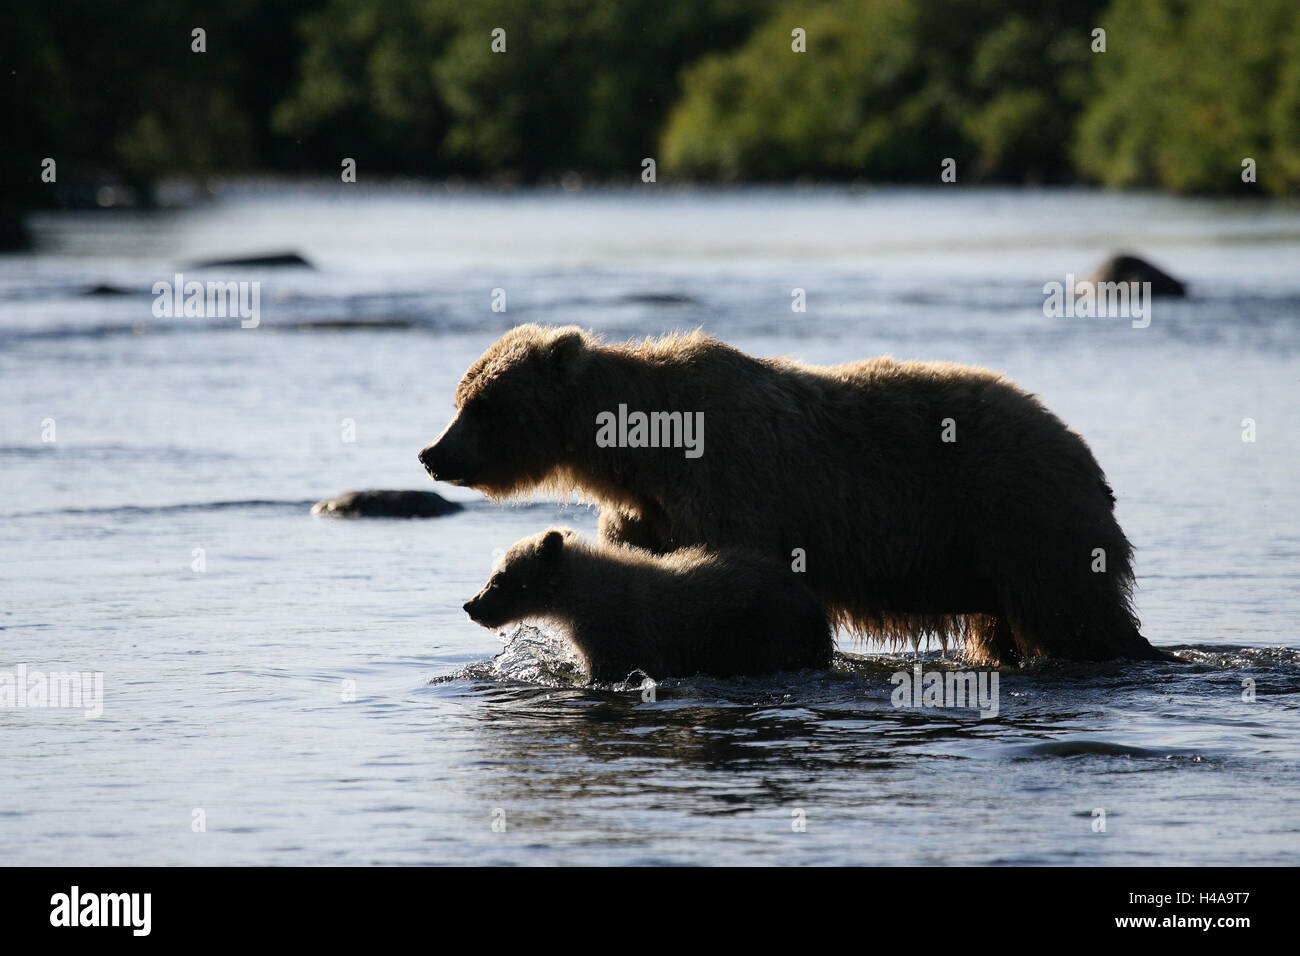 Grizzly bears, she-bear, young animal, river, - Stock Image